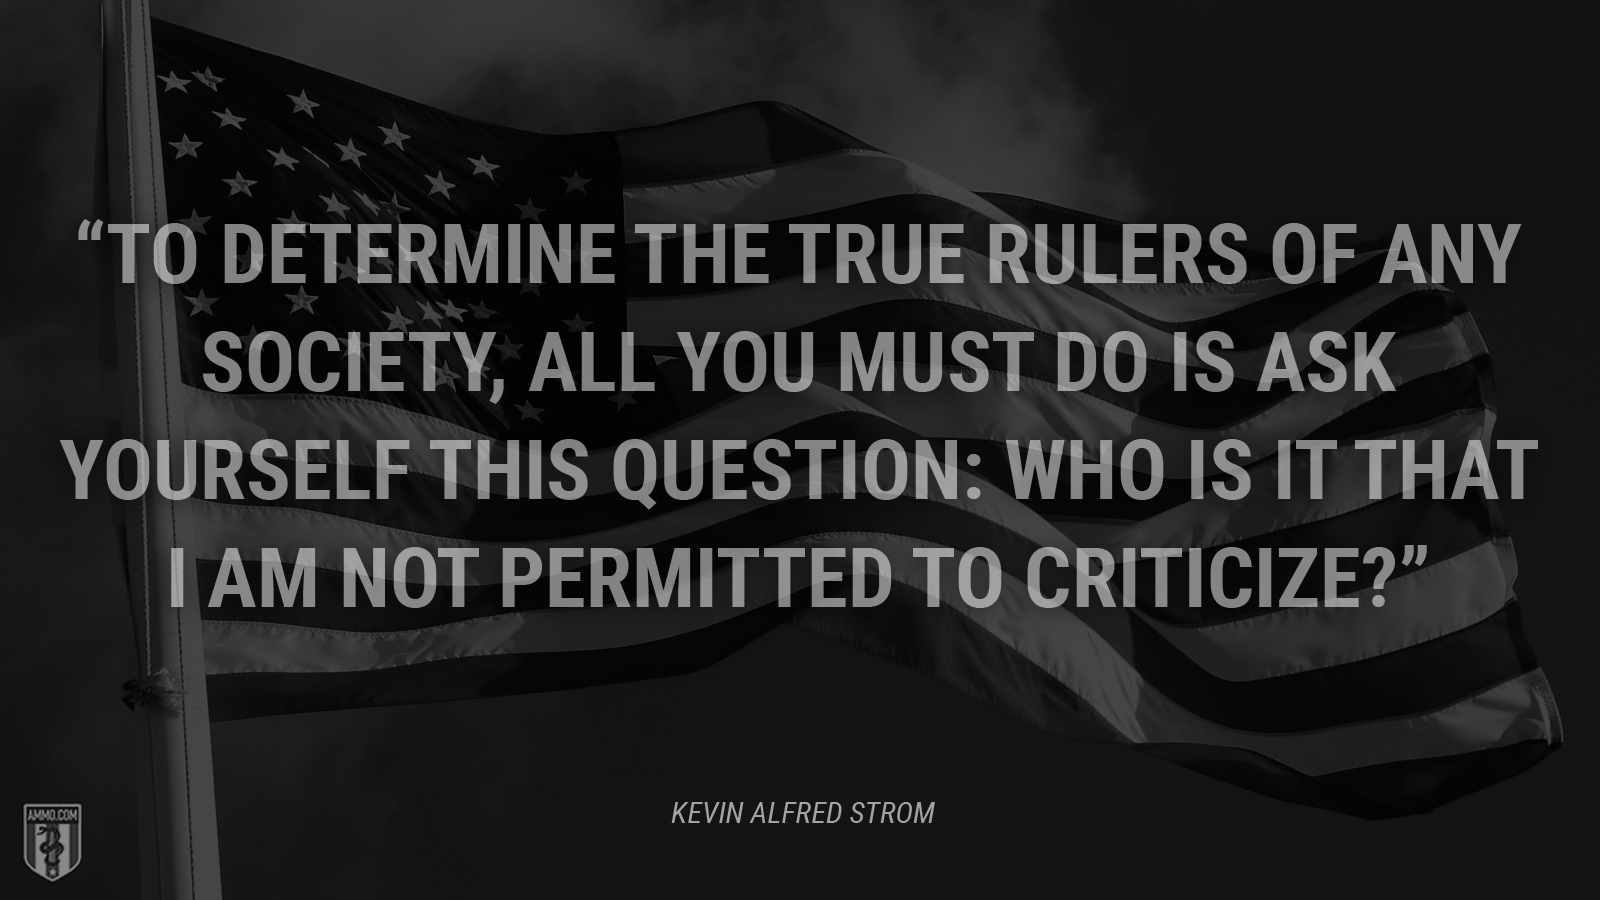 """To determine the true rulers of any society, all you must do is ask yourself this question: Who is it that I am not permitted to criticize?"" - Kevin Alfred Strom"